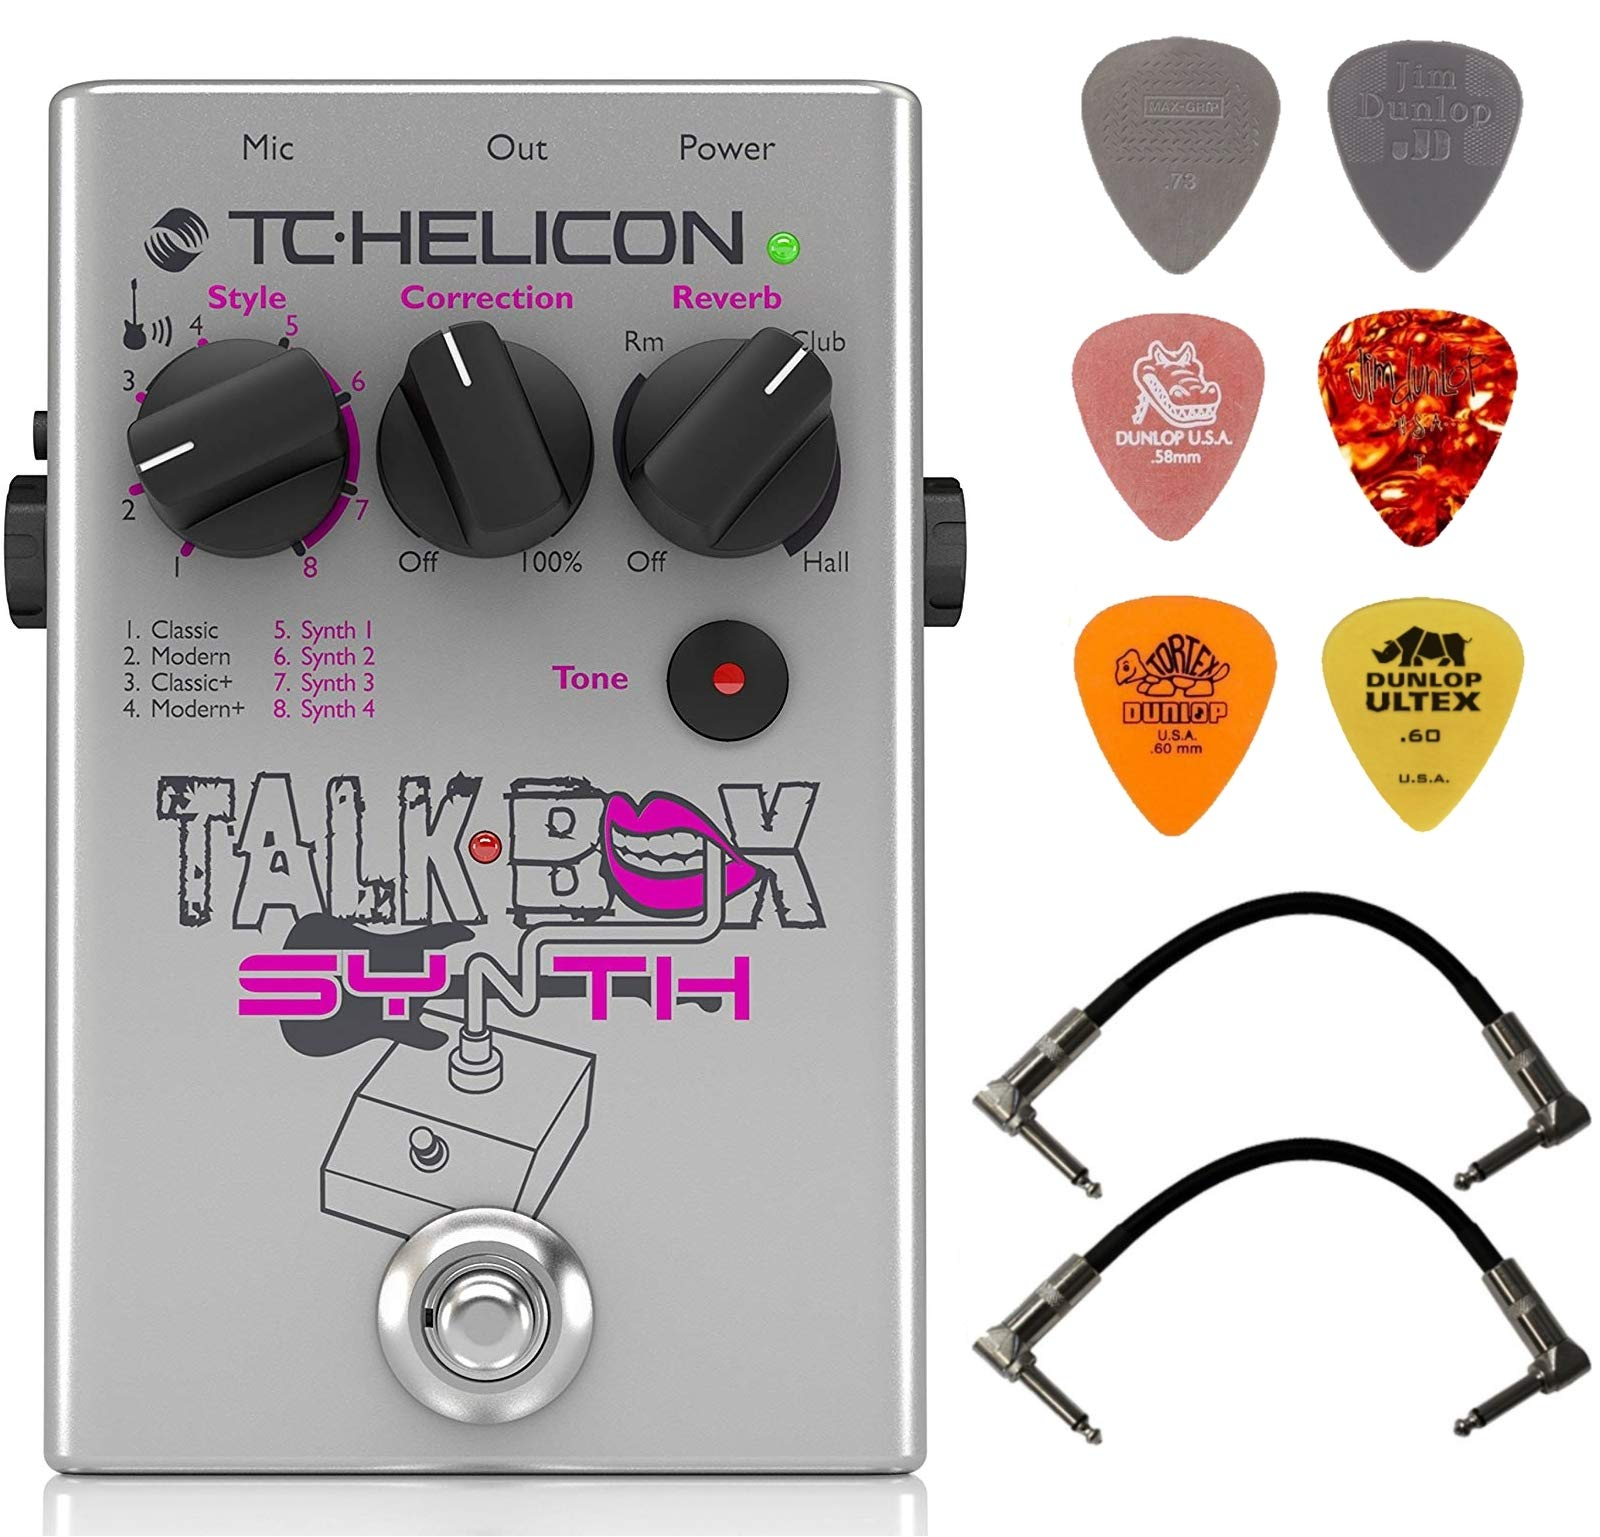 TC Helicon TalkBox Synth Guitar and Vocal Effects Processor Bundle with 2 Patch Cables and 6 Guitar Picks